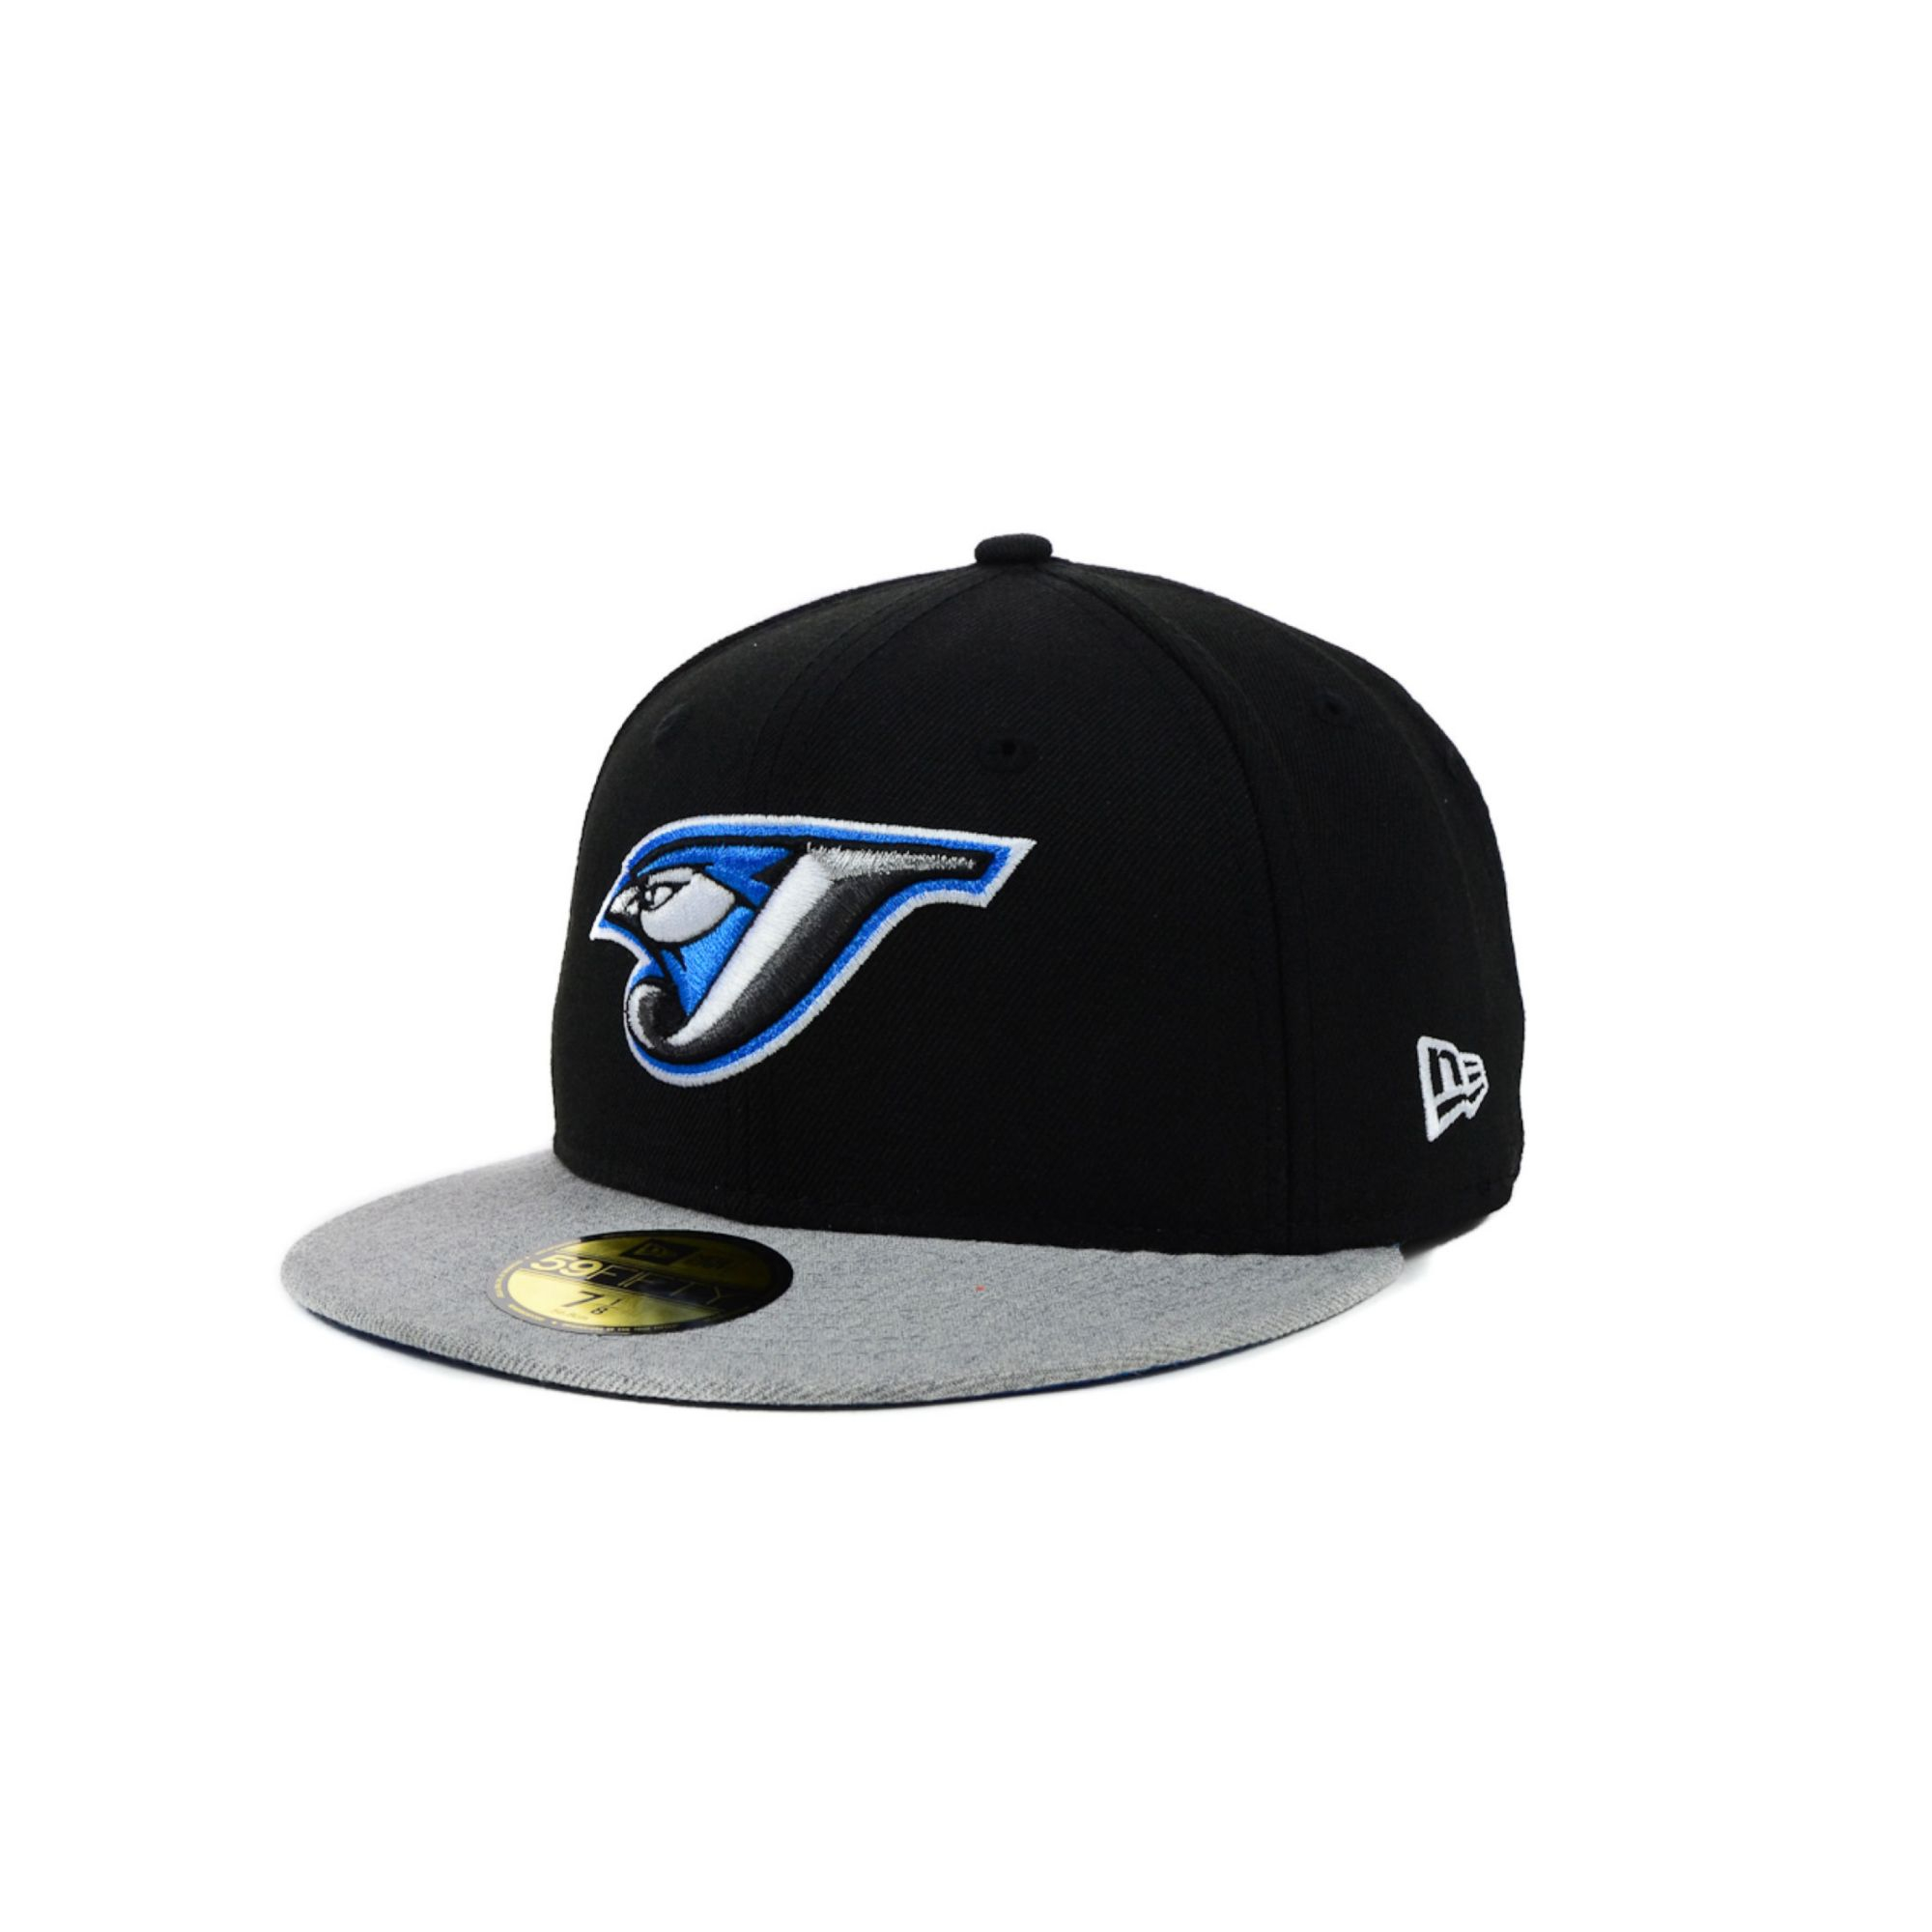 08d5ee5f6f8 ... store lyst ktz toronto blue jays mlb team heather 59fifty cap in black  1a2aa c155a